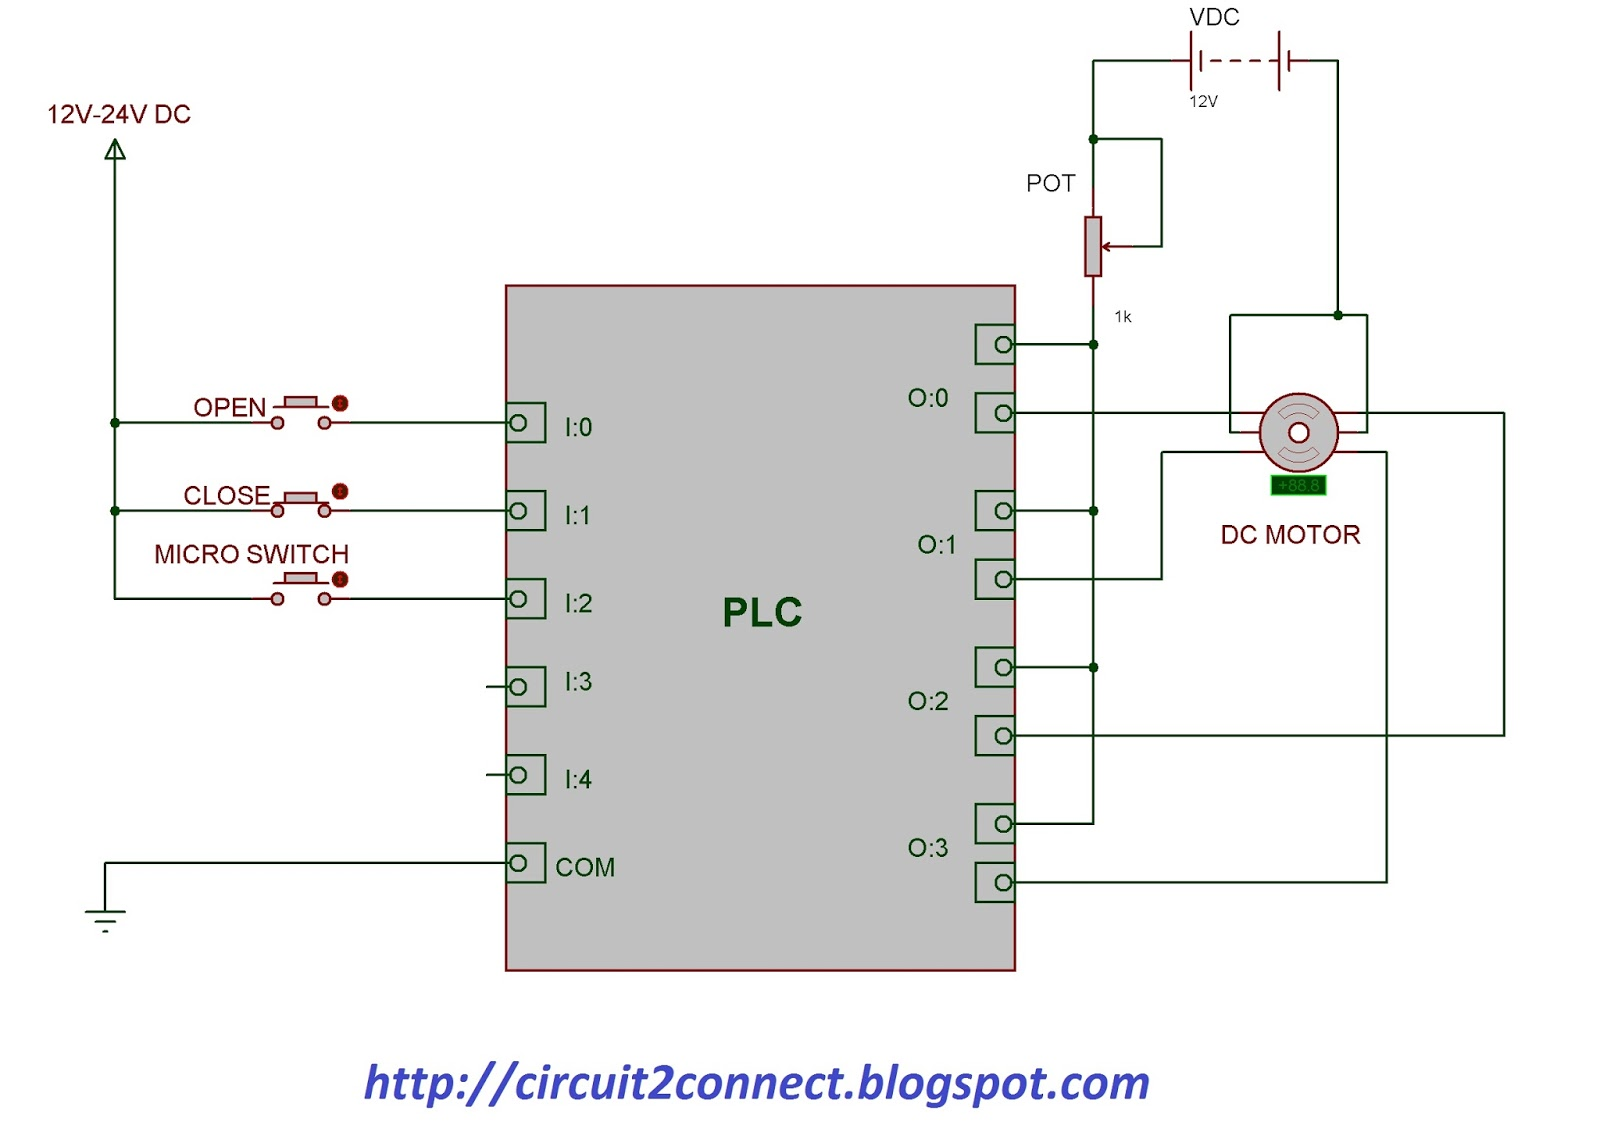 Semi-Automated Control of Tollgate Gate using PLC & DC Motor